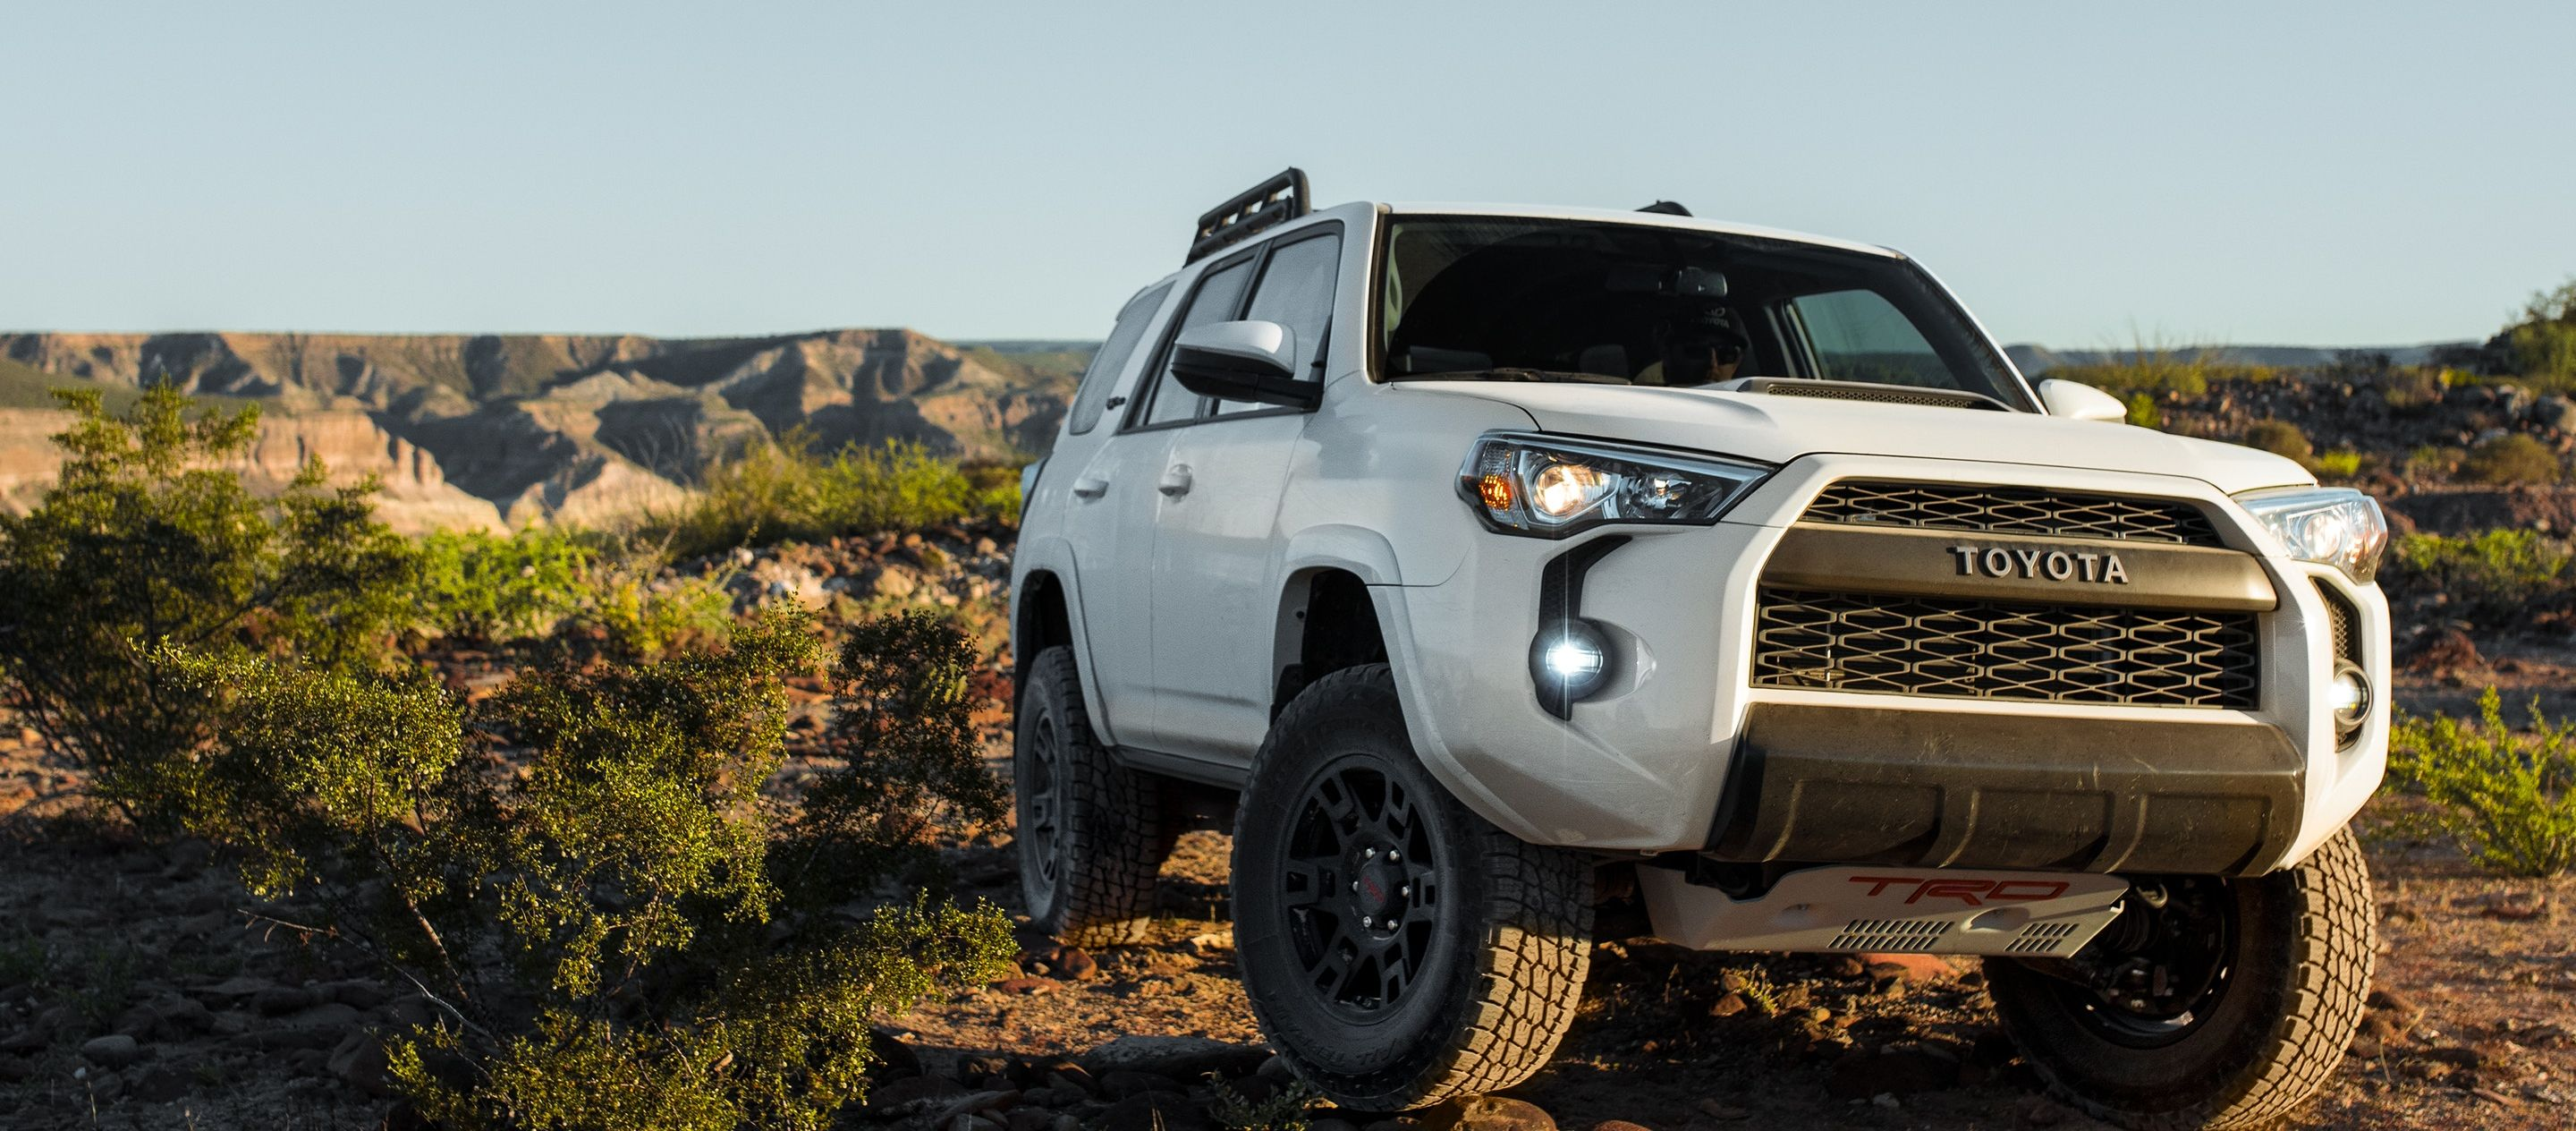 2019 Toyota 4runner Leasing Near Des Moines Ia Toyota Of Des Moines